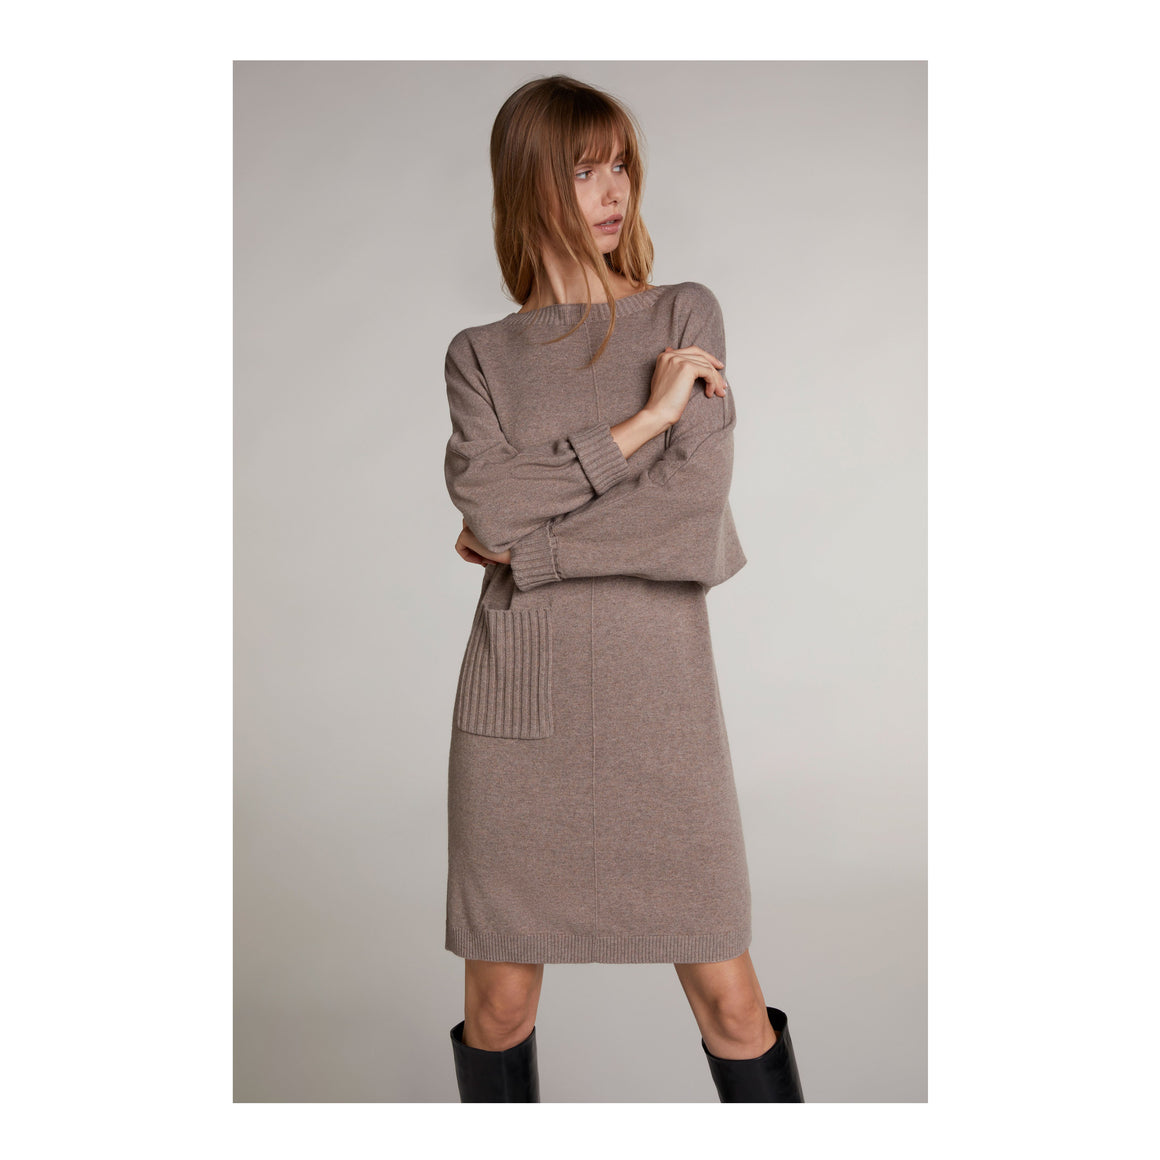 Knitted Dress for Women in Taupe Melange